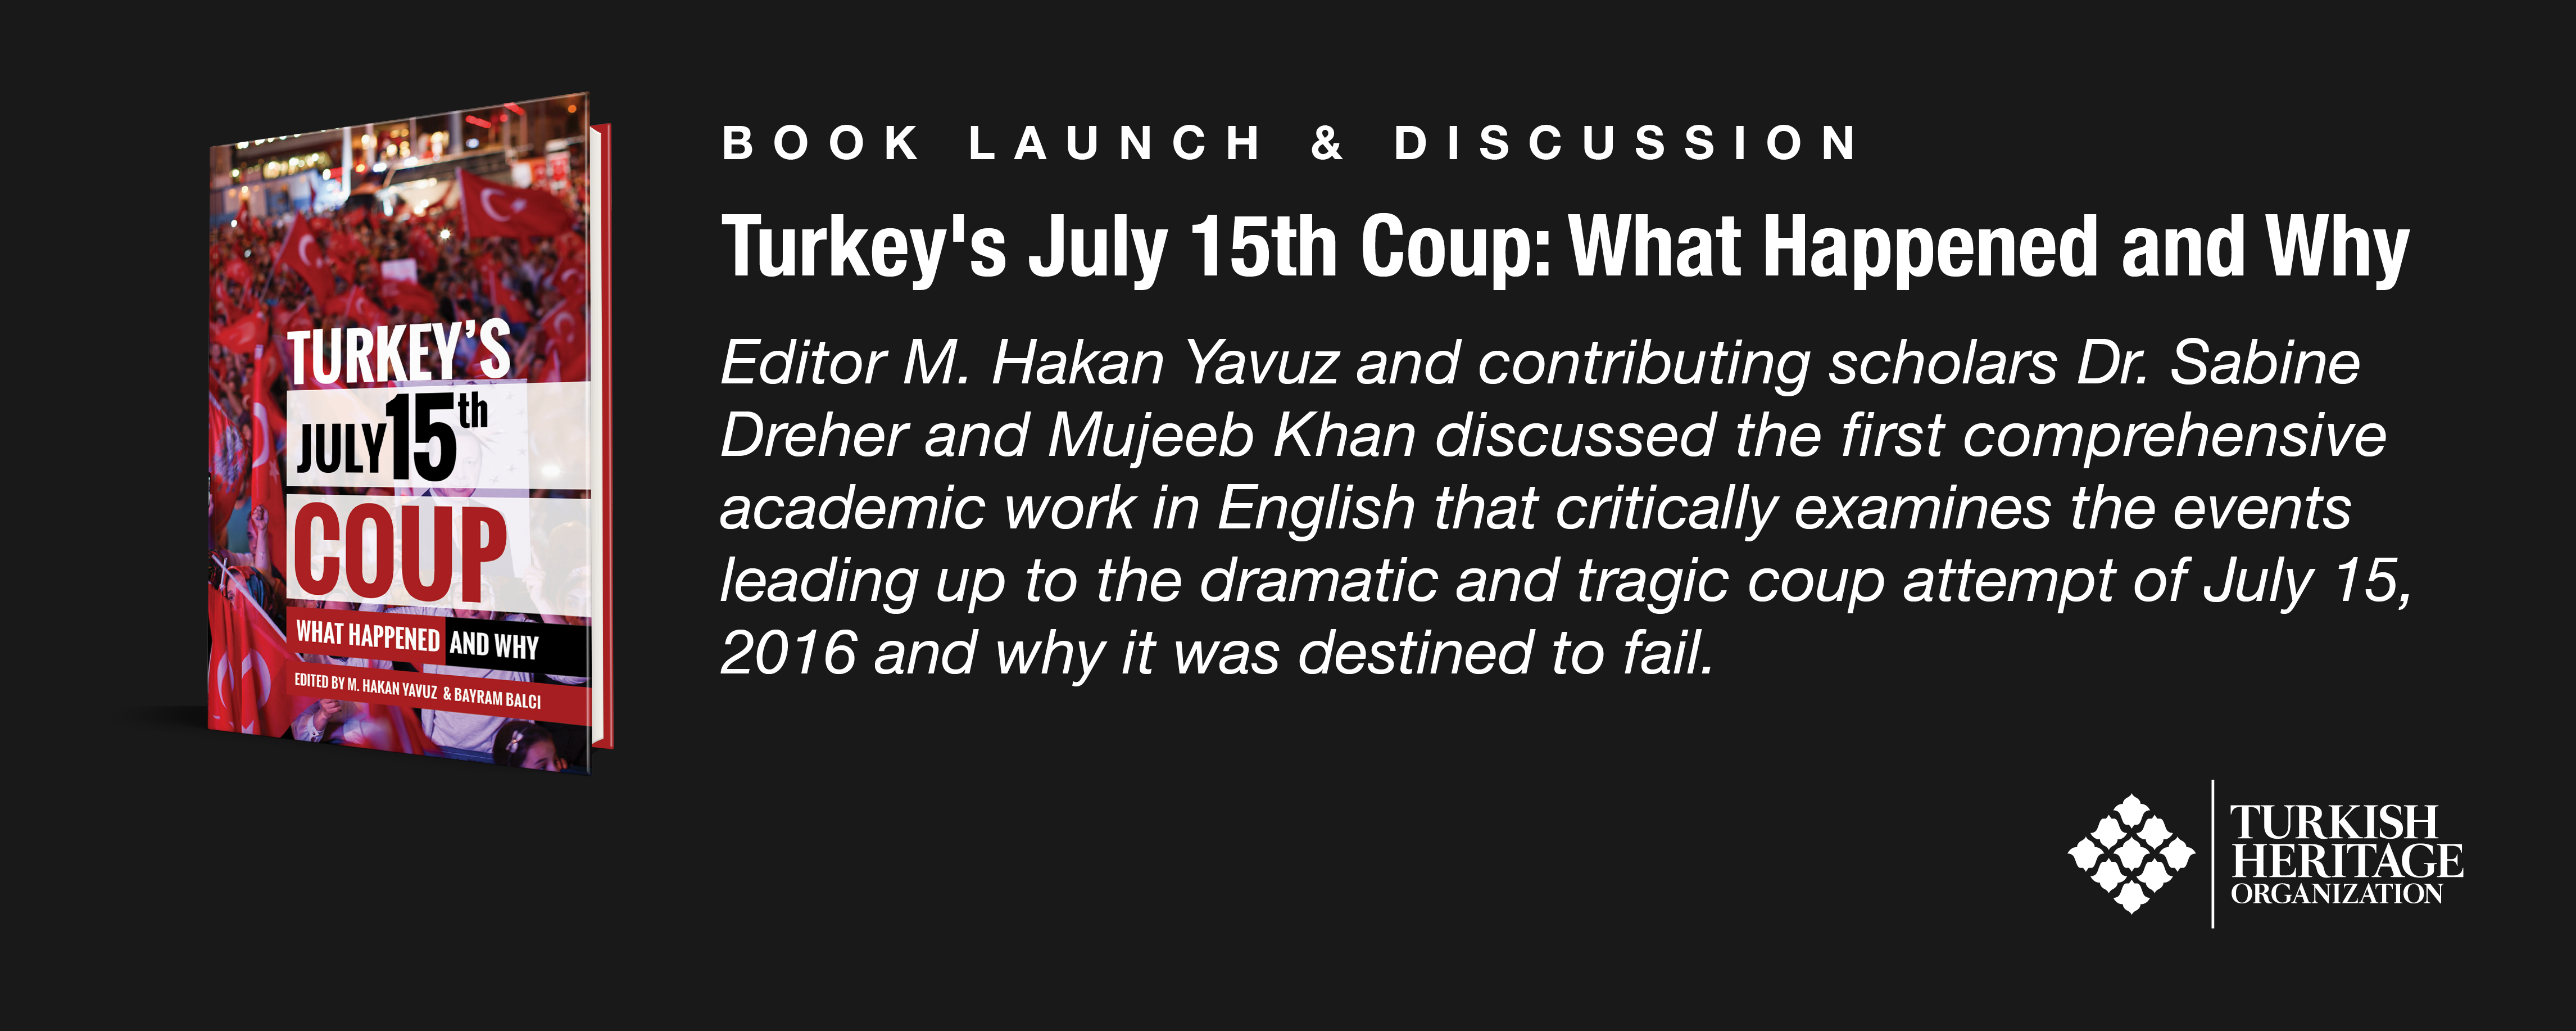 THO Hosted Book Launch for Comprehensive Academic Work on Gulen Movement's Role in July 15th Coup